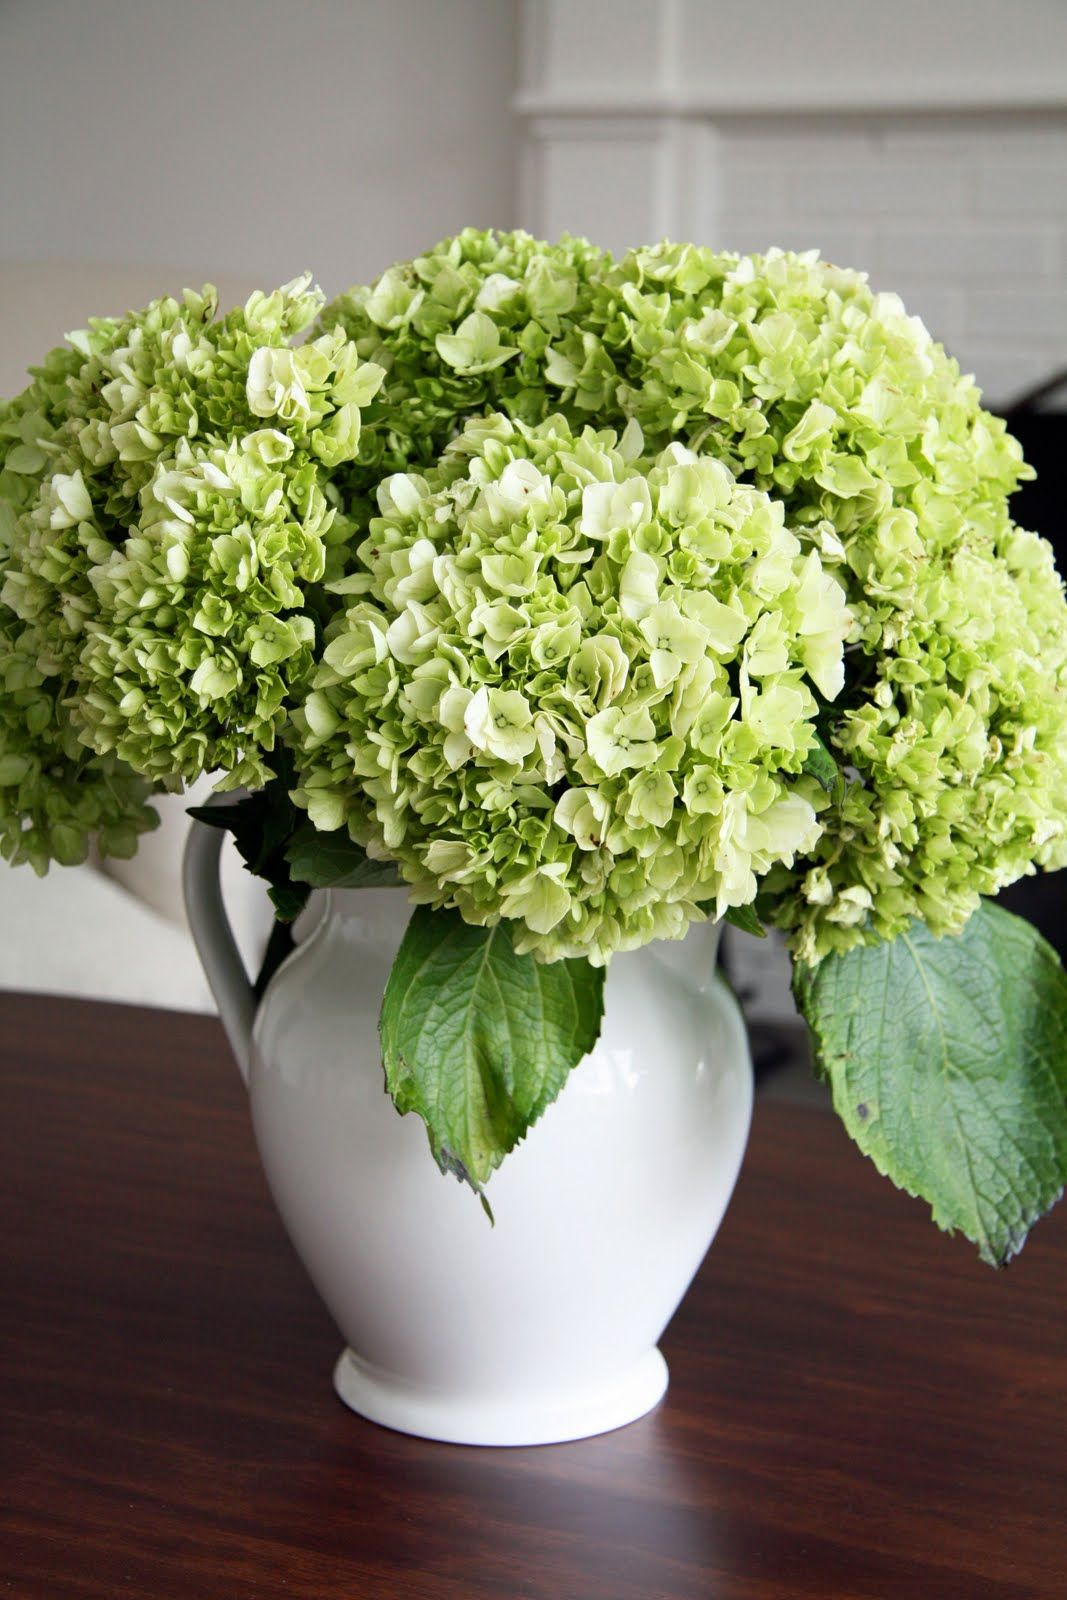 H Ydrangea Are One Of My Favorite Flowers Last Summer I Planted Twenty Hydrangea B Hydrangea Flower Arrangements Table Flower Arrangements Hydrangeas Wedding